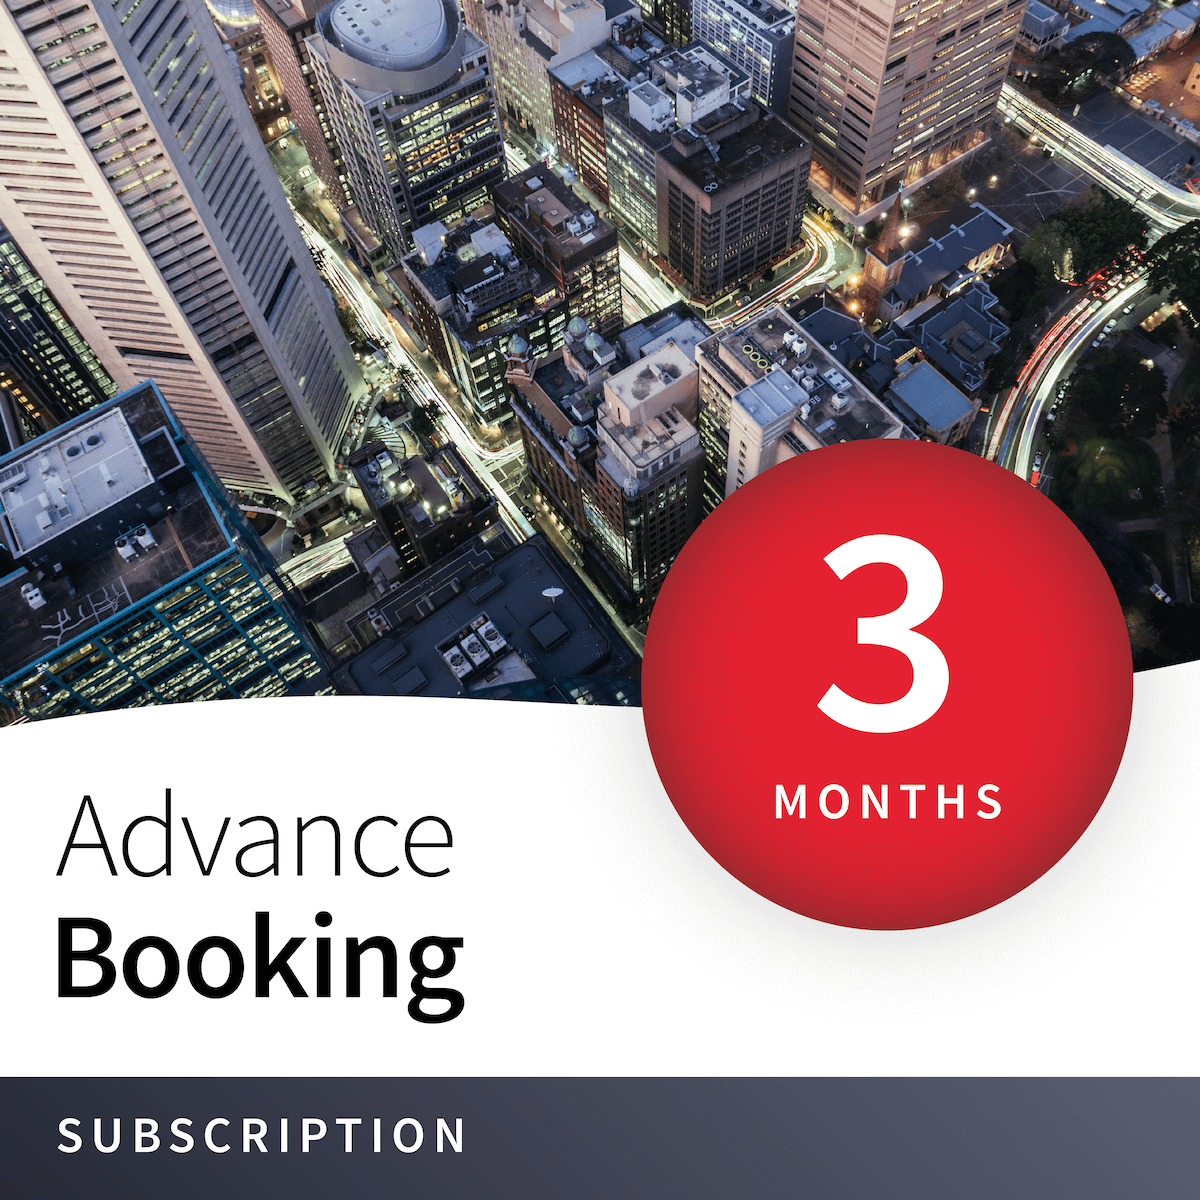 Priority Advance Booking - 3 Months 4